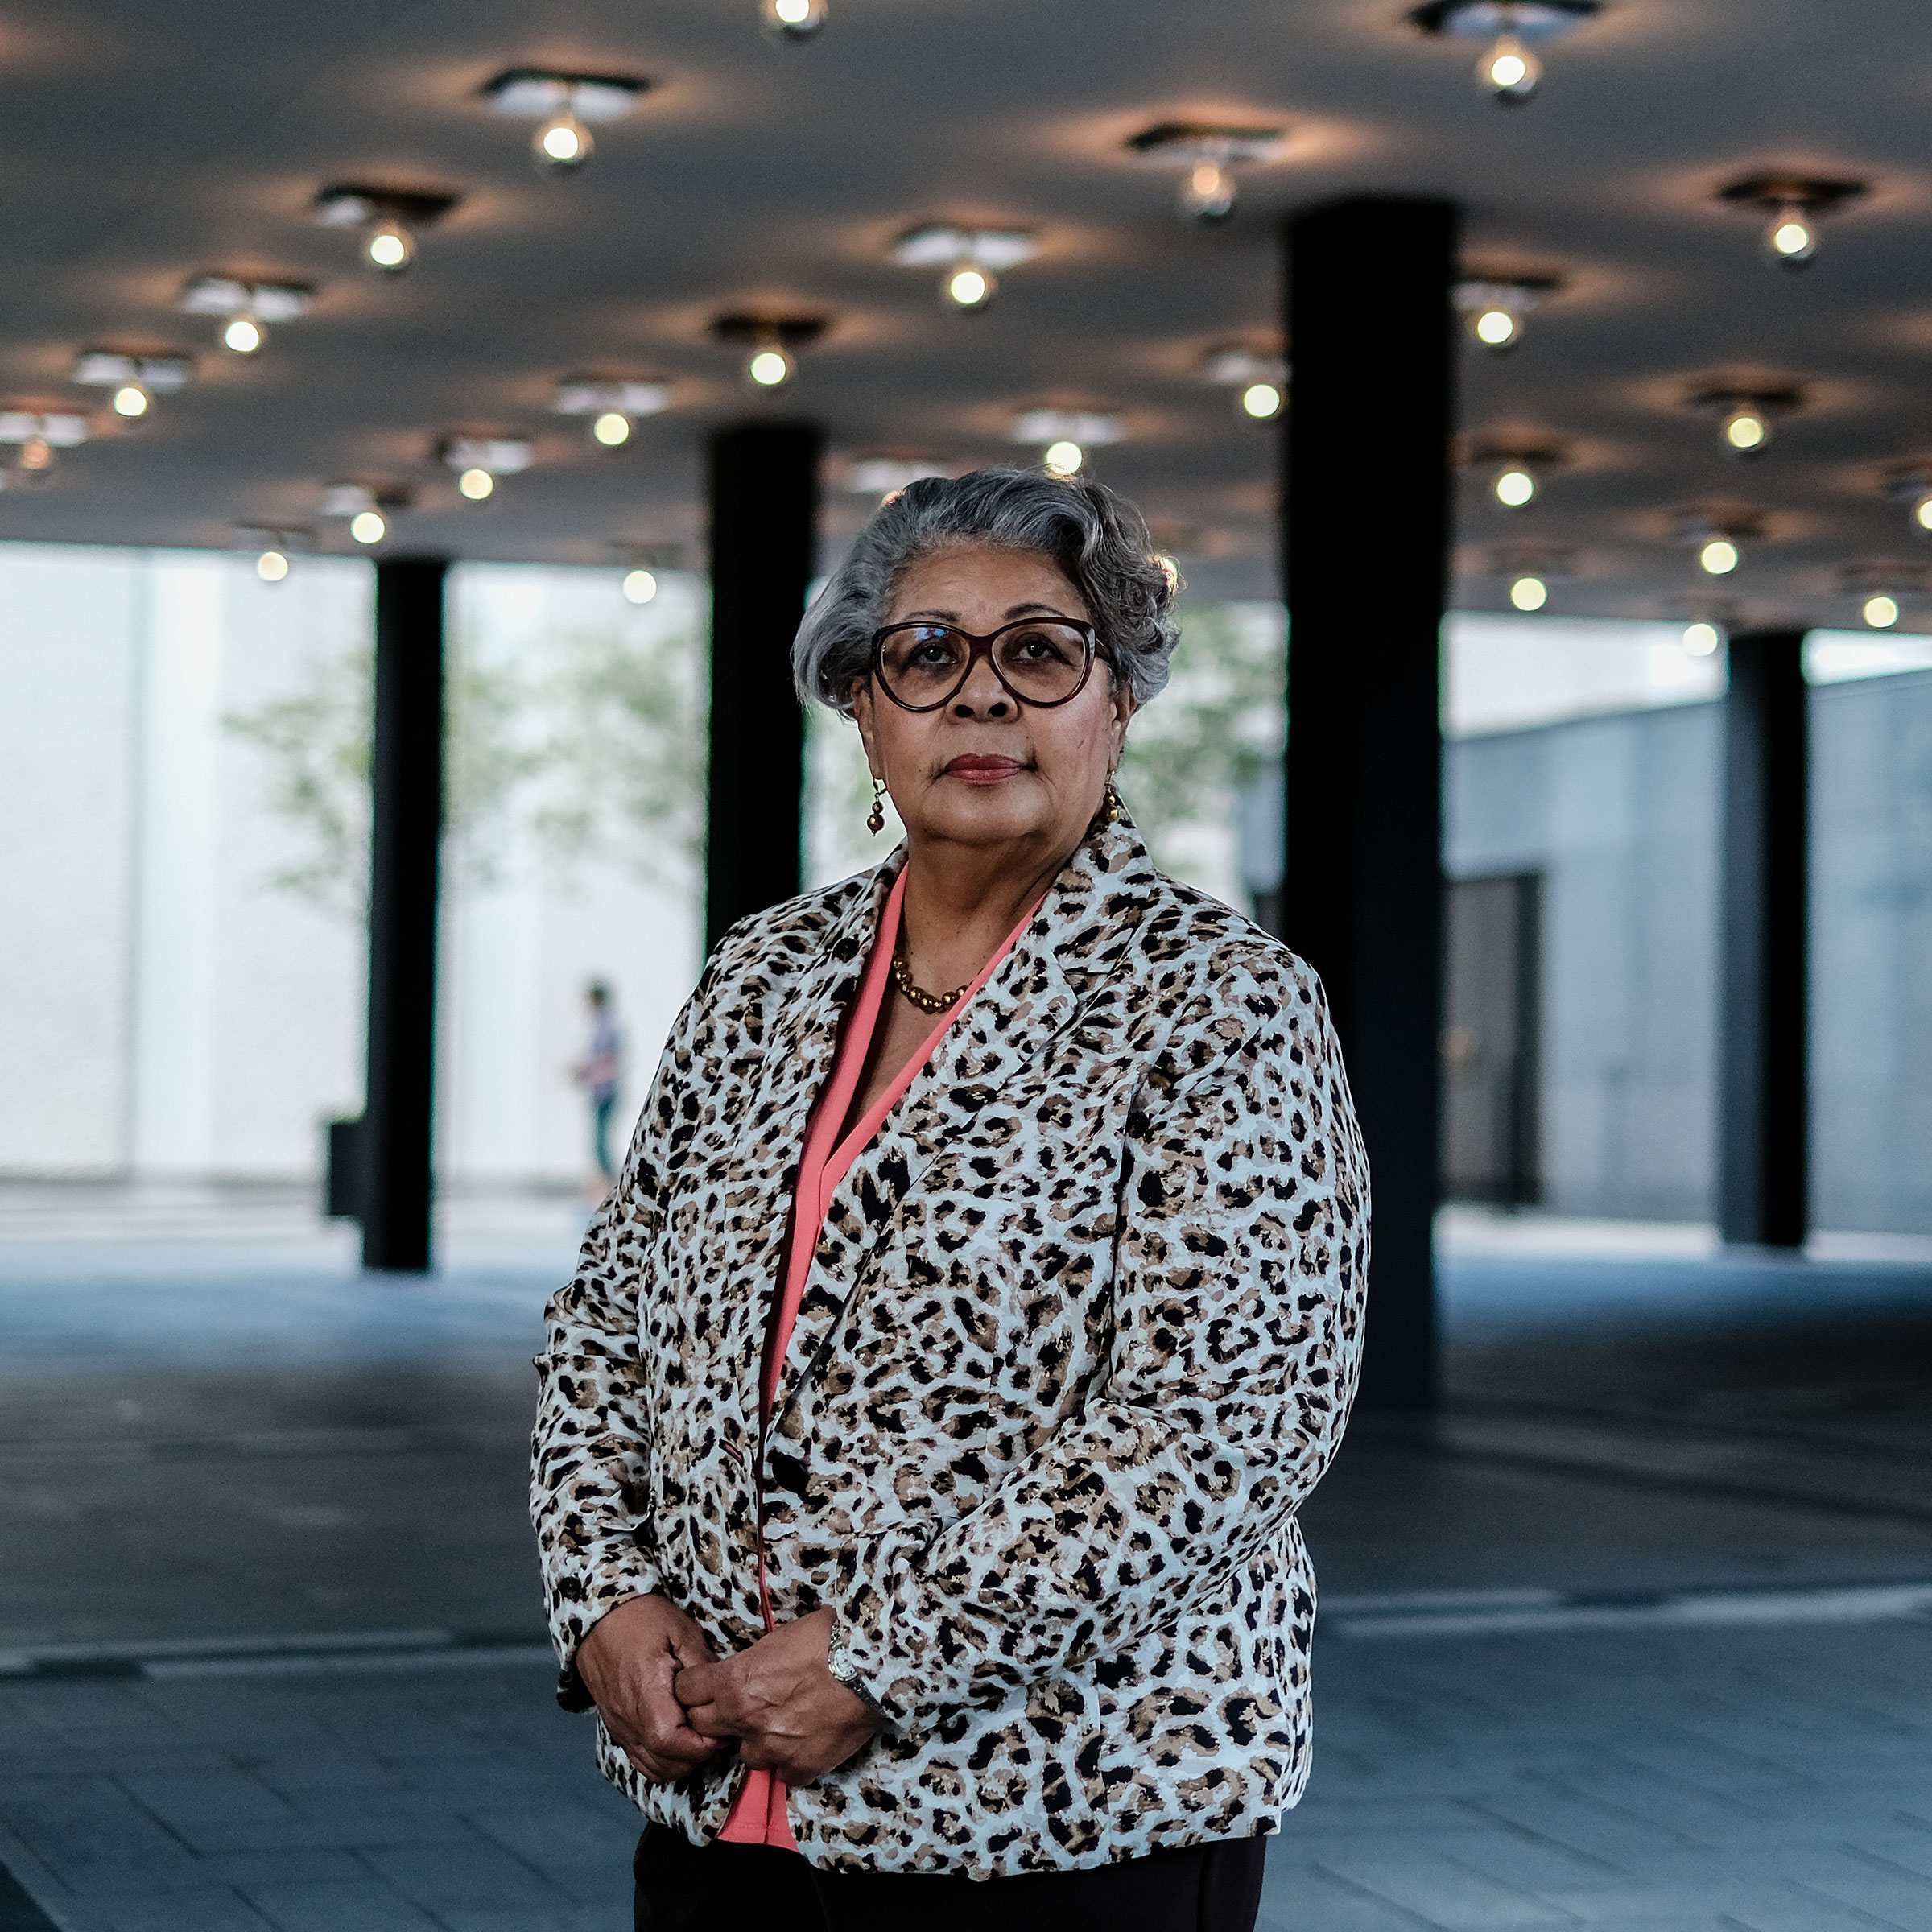 Texas Representative Senfronia Thompson stands for a portrait in Washington, D.C., on July 16, 2021.